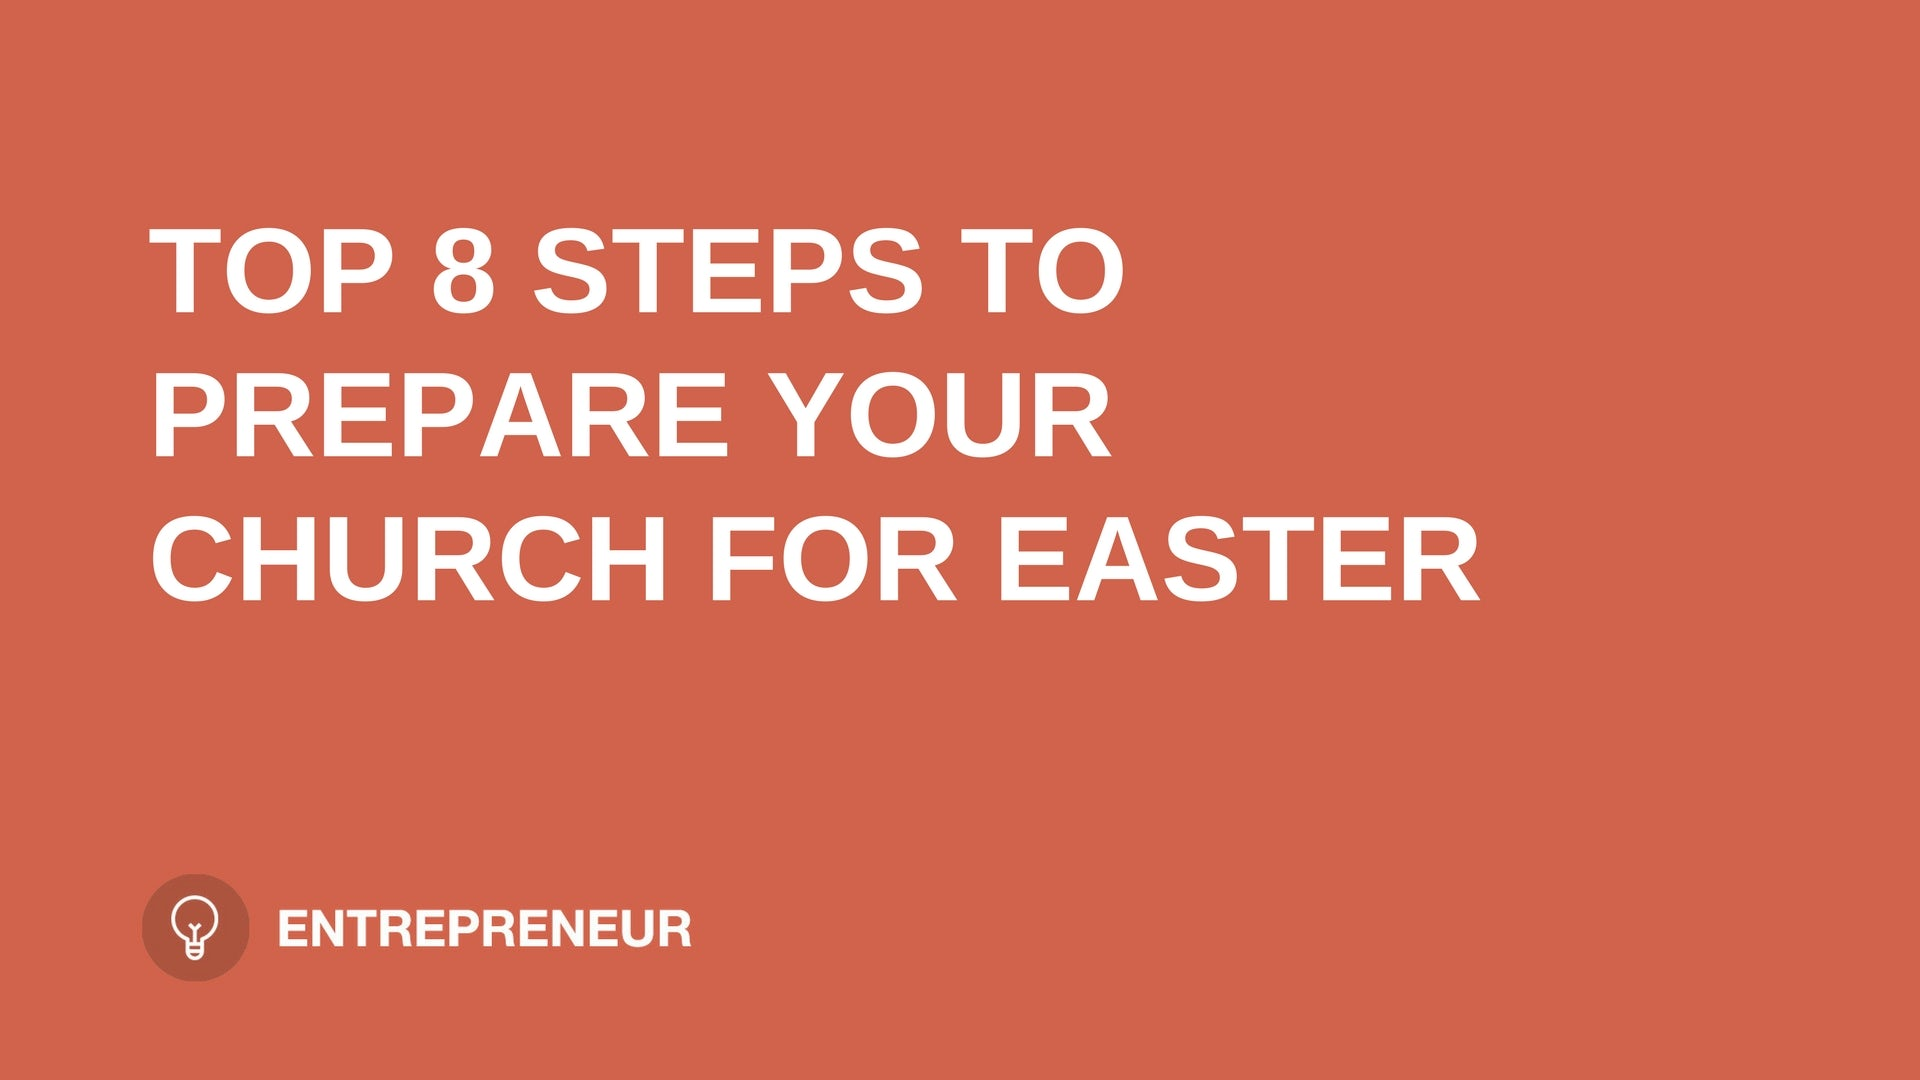 "text ""TOP 8 STEPS TO PREPARE YOUR CHURCH FOR EASTER"" on orange background leaders.church"